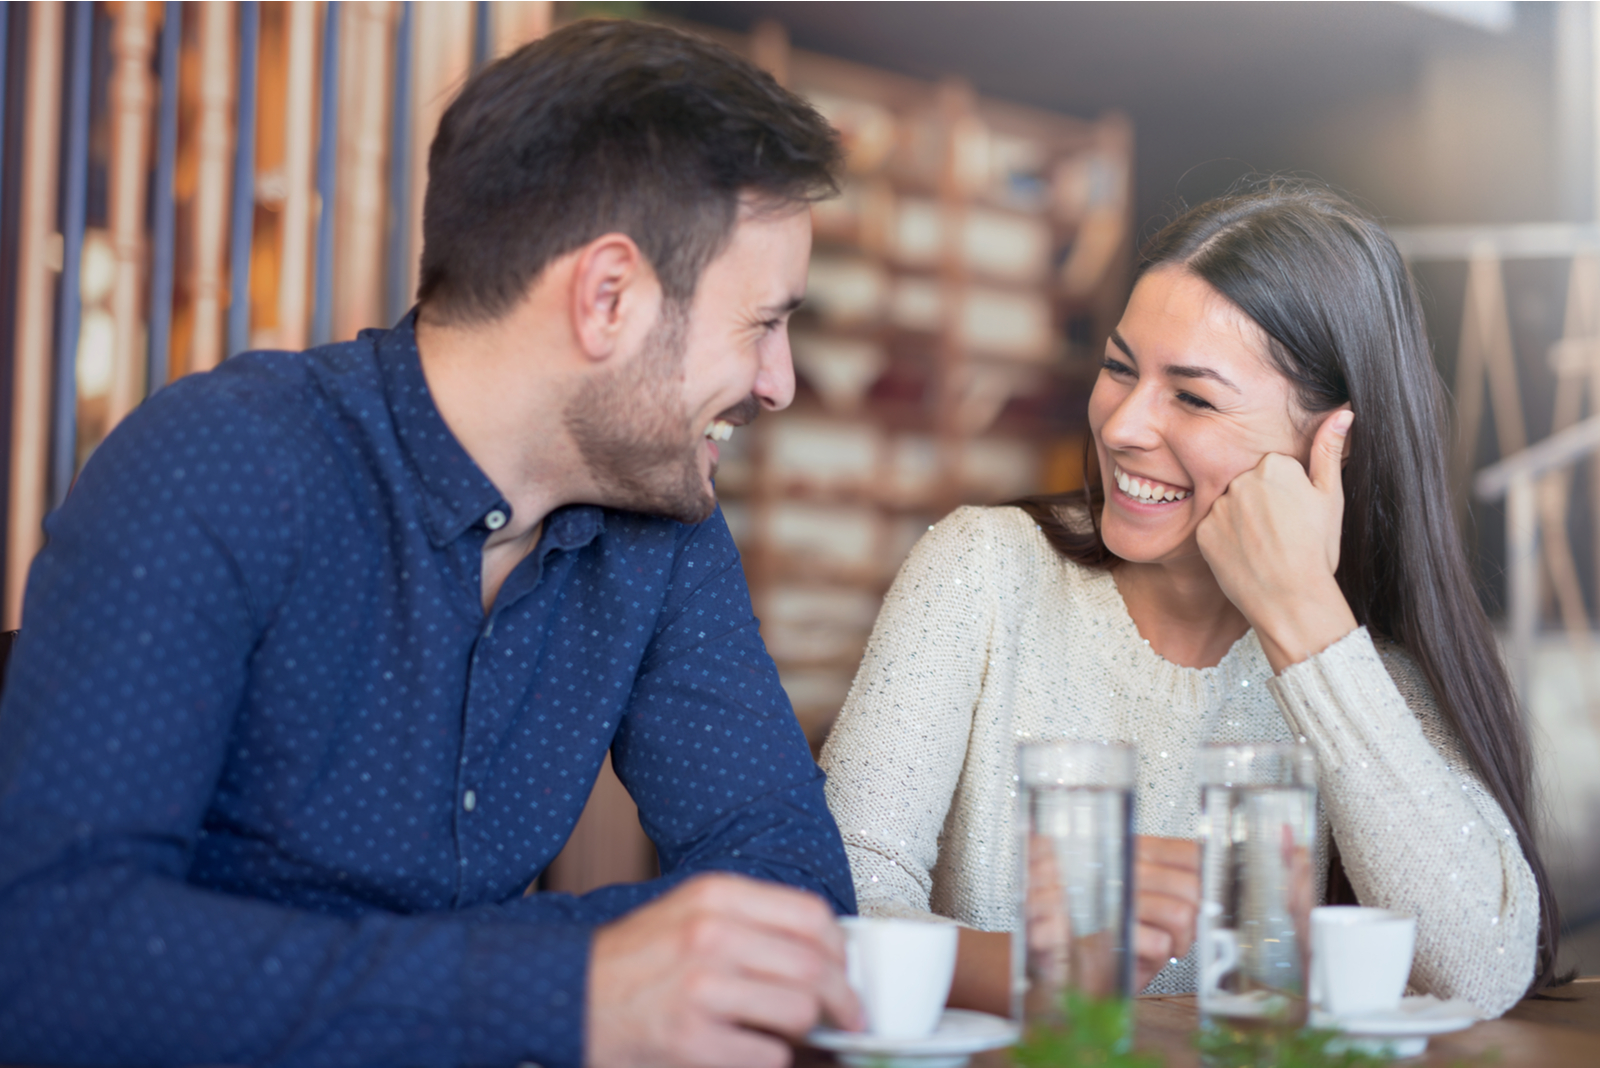 a man and a woman are sitting in a cafe drinking coffee